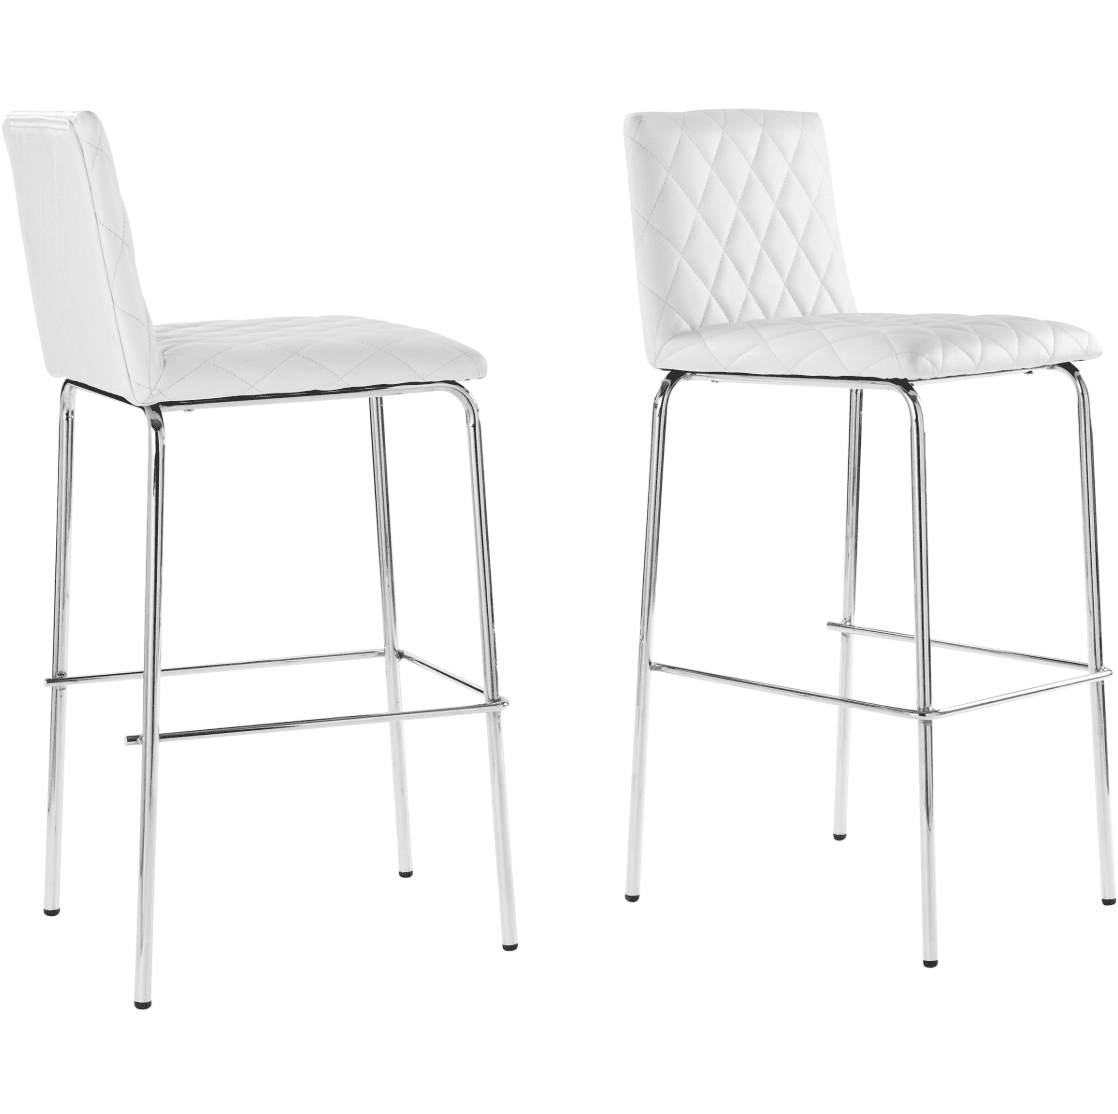 Better Homes & Gardens Etta Quilted Bar Stools in White